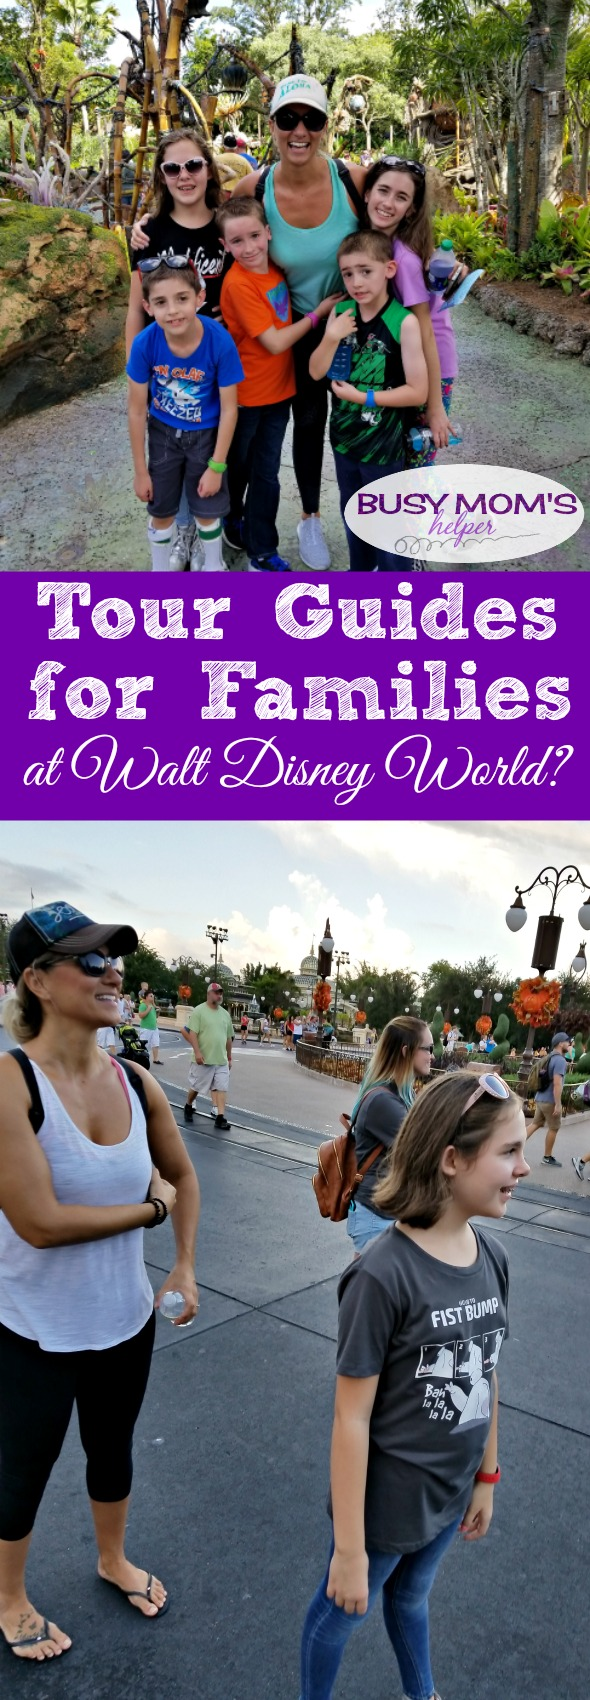 Tour Guides for Families at Walt Disney World #sponsored #waltdisneyworld #tourguides #guidesatDisney #DisneyWorld #familytravel #Disneyfamily